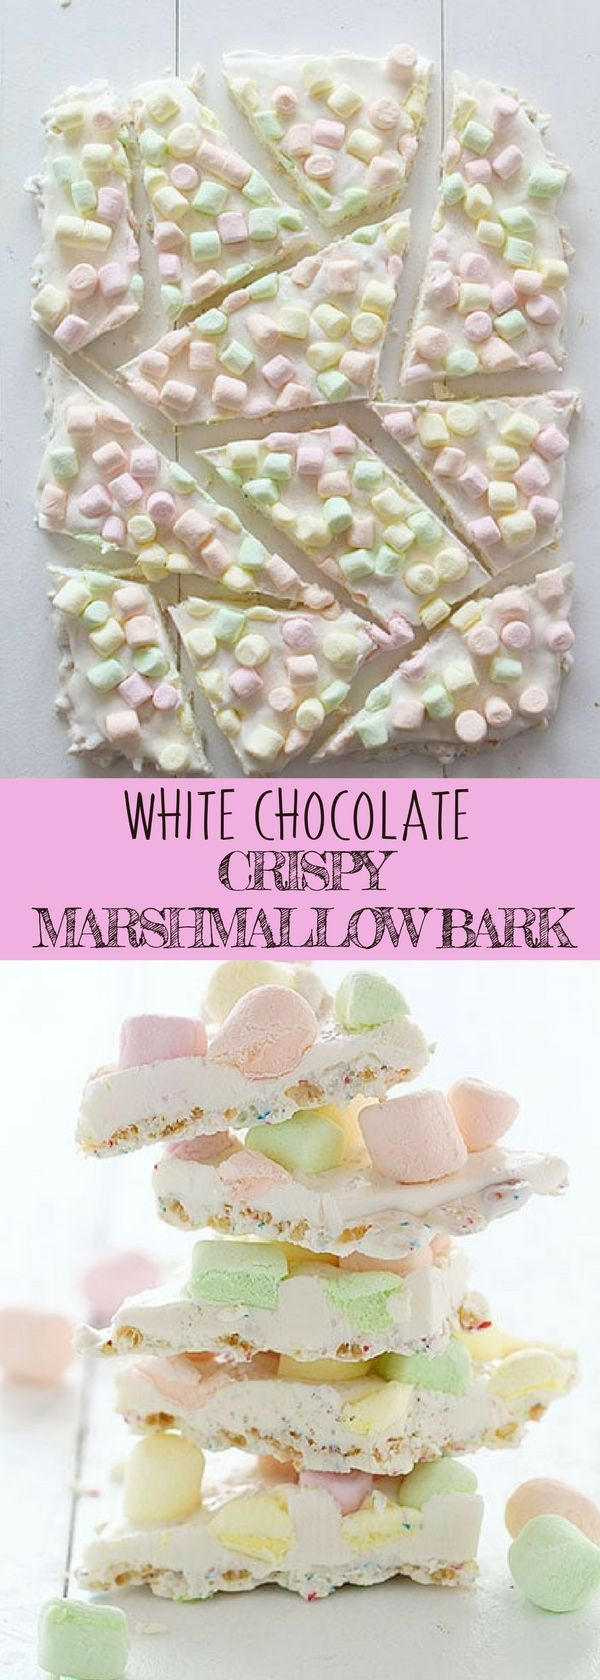 WHITE CHOCOLATE CRISPY MARSHMALLOW BARK | Love chocolate bark recipes? You'll definitely love this easy dessert recipe for winter! All you need are quality white chocolates, colored mini marshmallows and some sprinkles. For more simple and easy dessert recipes to make, check us out at #iambaker. #chocolate #foodlover #desserts #yummydesserts #recipeoftheday